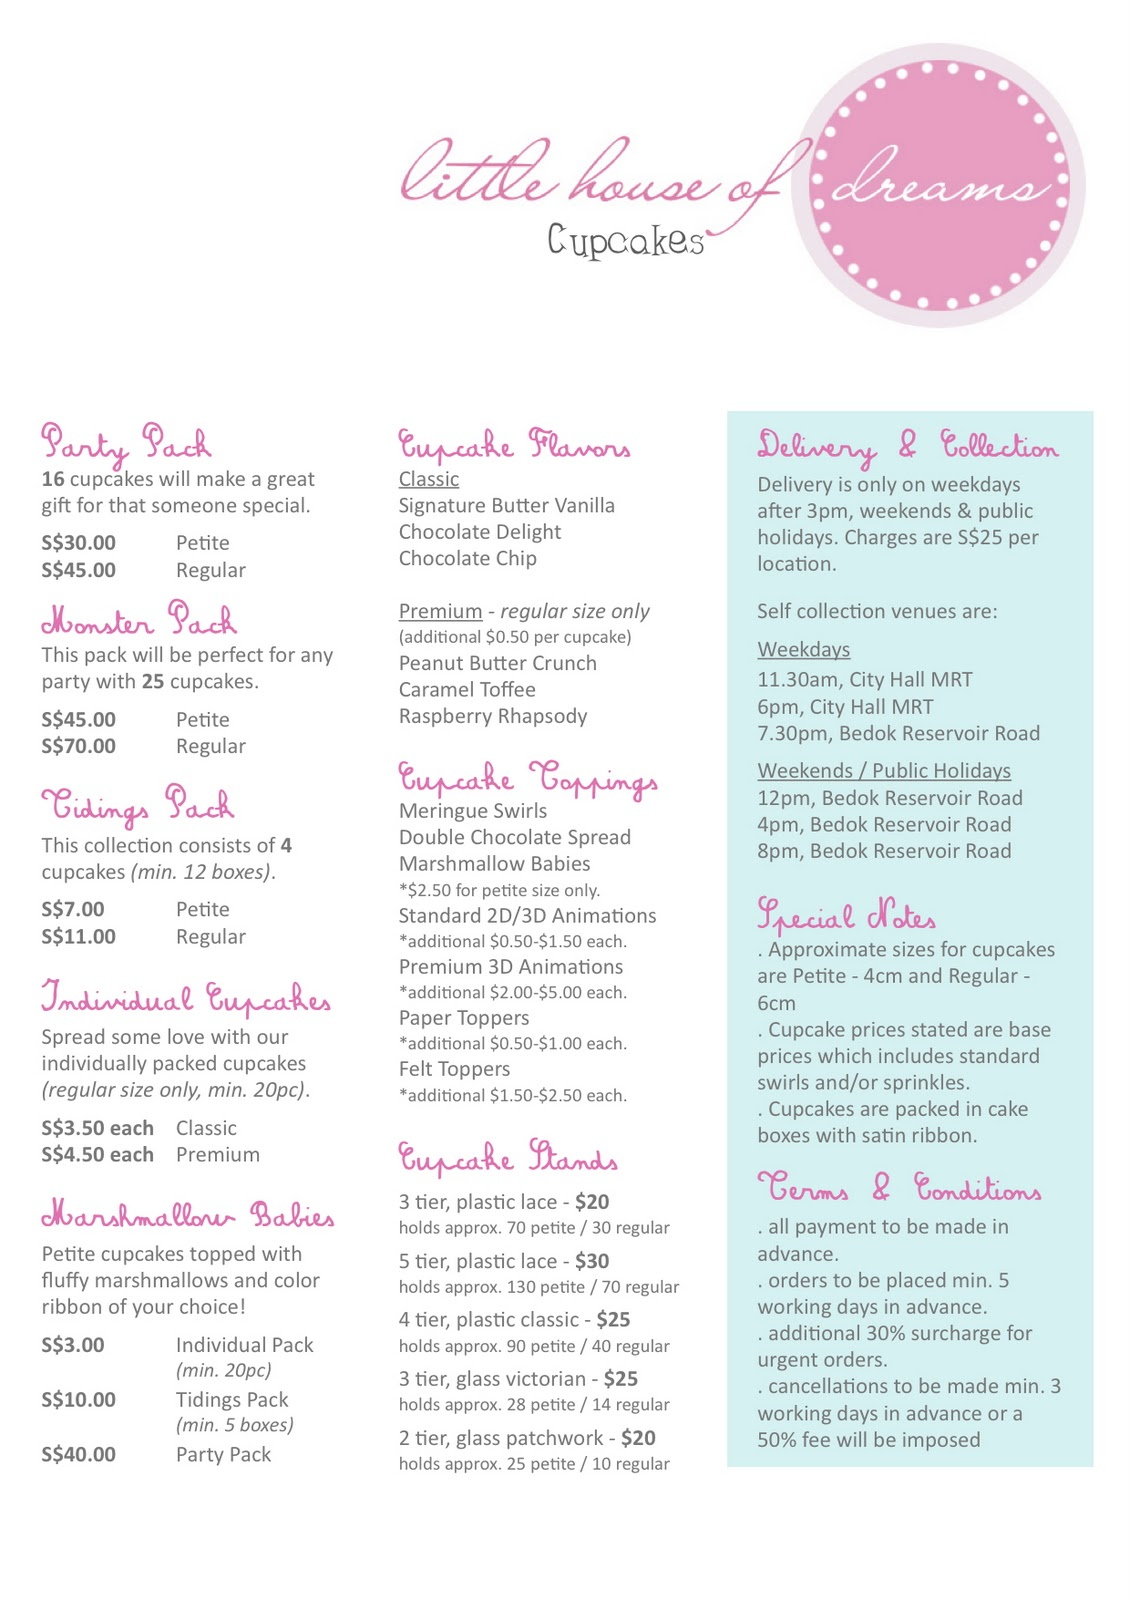 Cake Price List Template http://littlehouseofdreams.blogspot.com/2008/01/updated-price-list.html